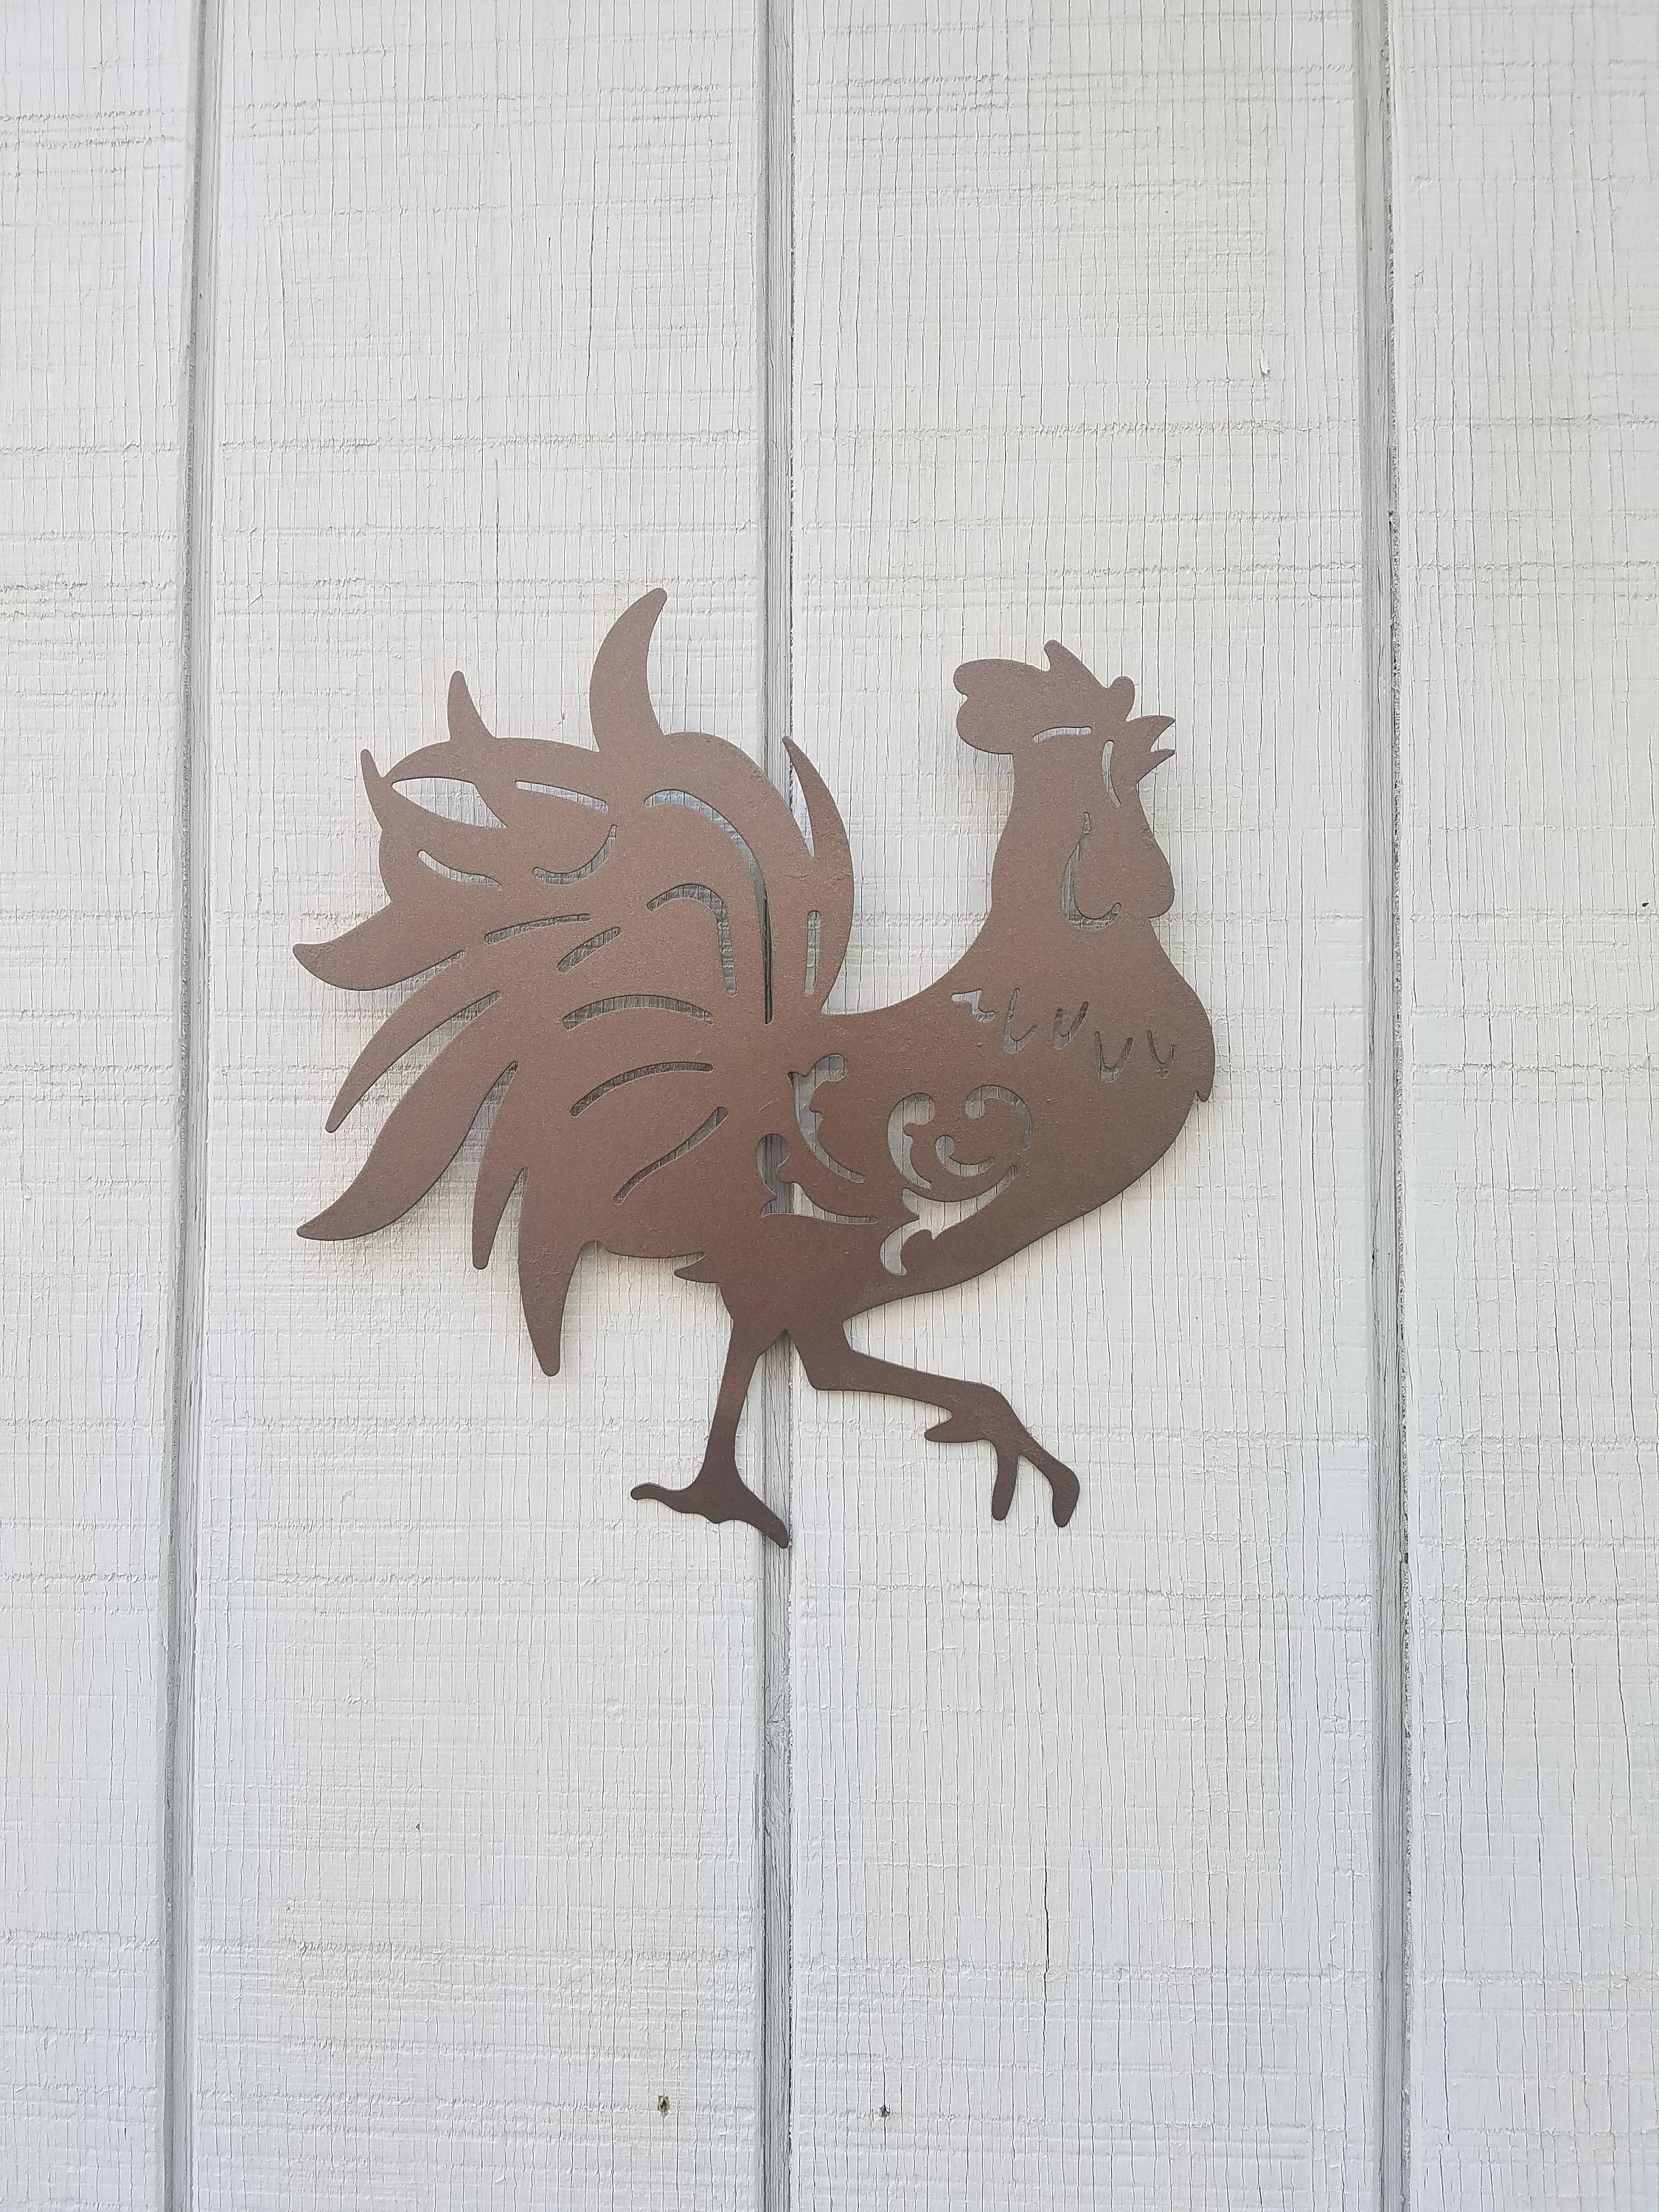 Rooster Wall Art / Rooster Decor / Kitchen Decor / Chicken In Most Recently Released Metal Rooster Wall Decor (View 14 of 25)